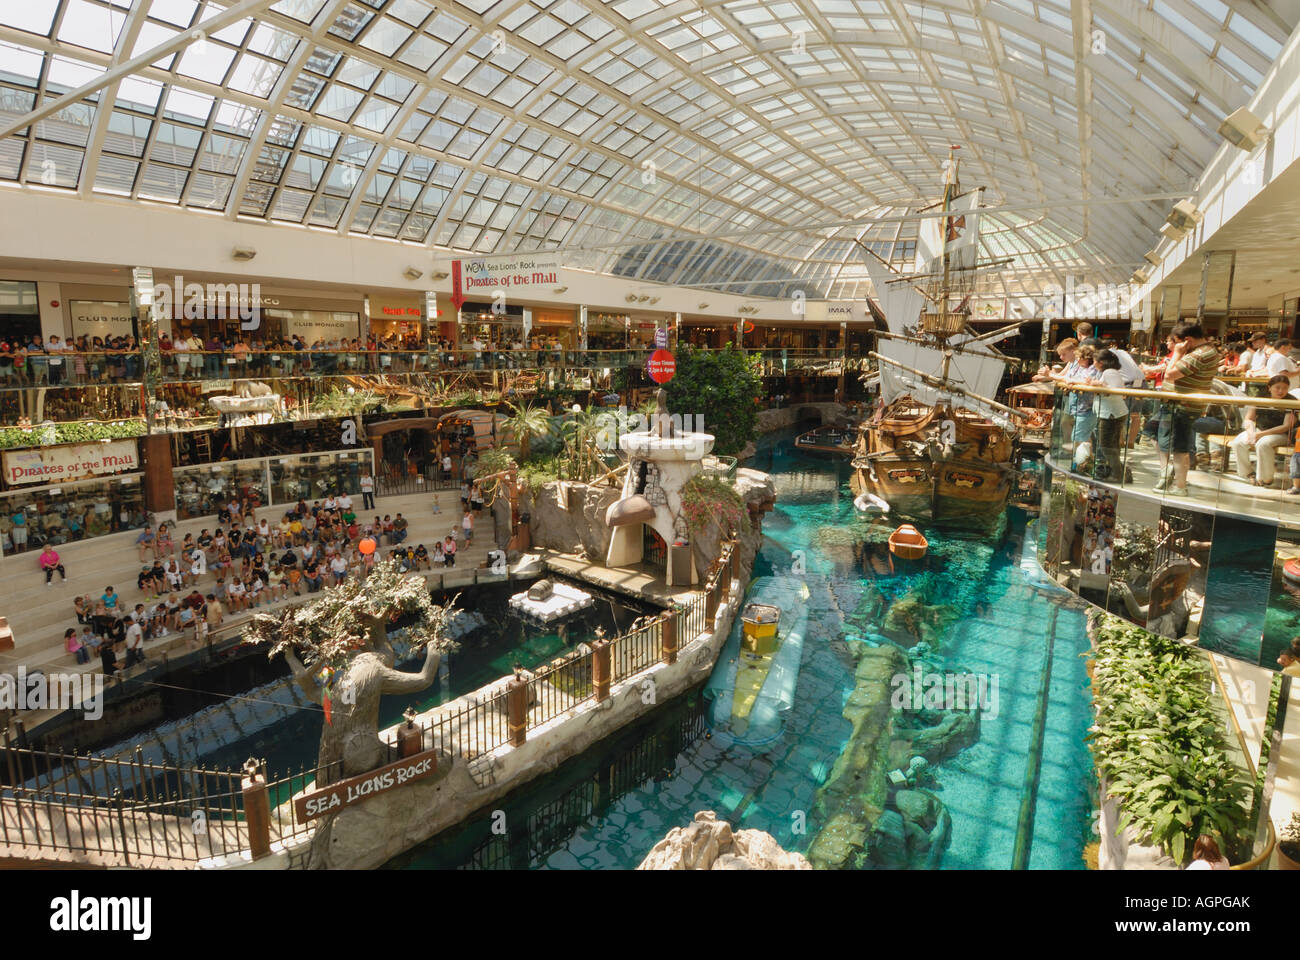 People watch dolphin show at the West Edmonton Mall the world s largest mall located in Alberta Canada - Stock Image